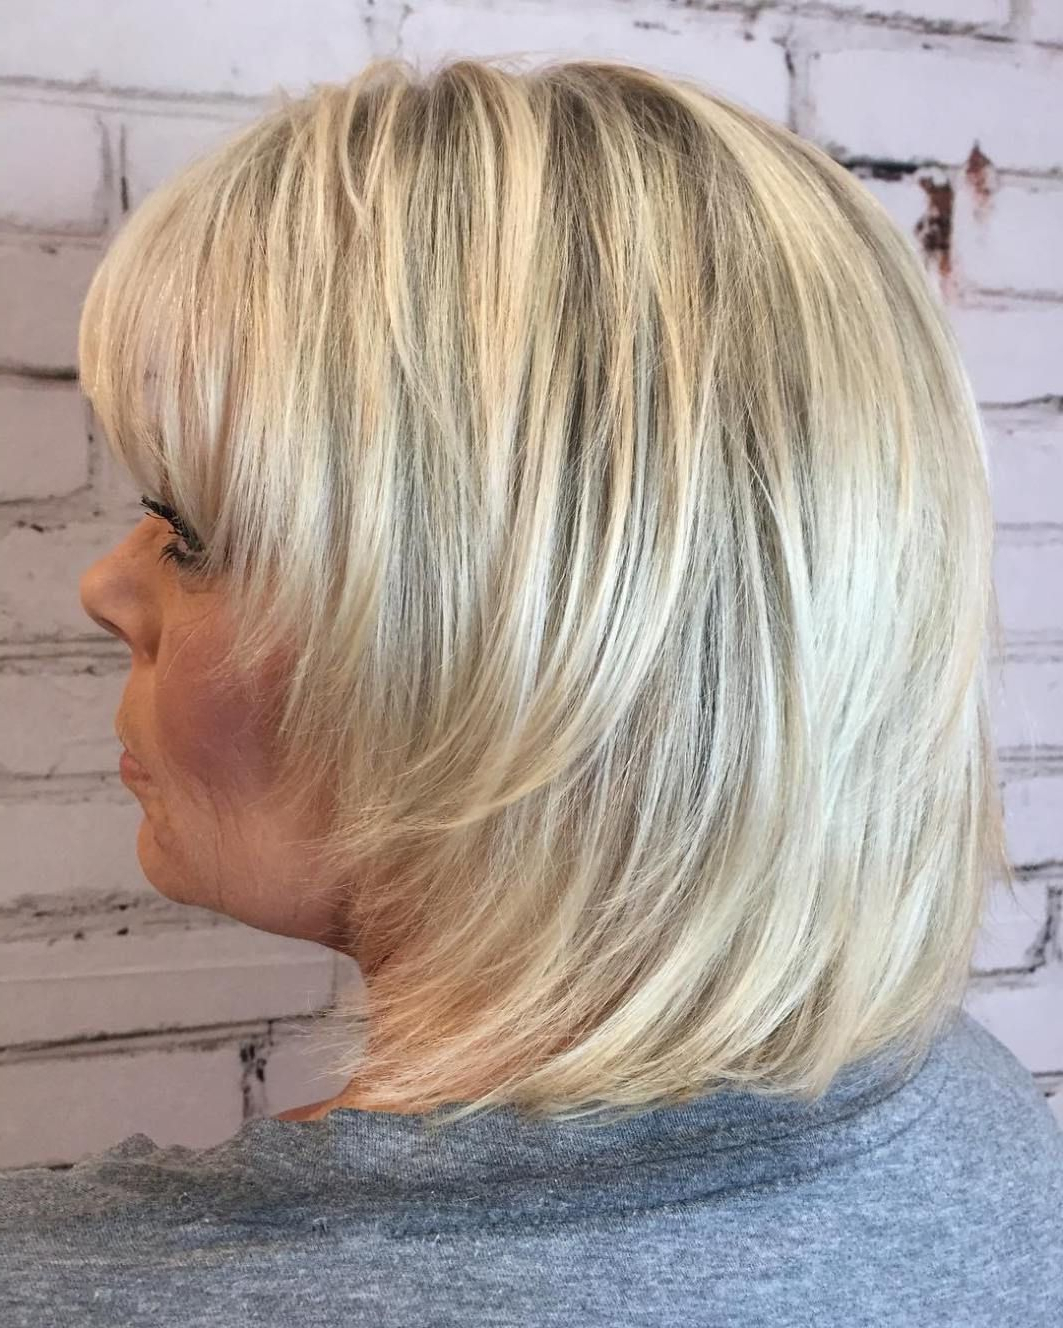 Widely Used Youthful Bob Hairstyles Within 20 Shaggy Hairstyles For Women With Fine Hair Over 50 (Gallery 4 of 20)